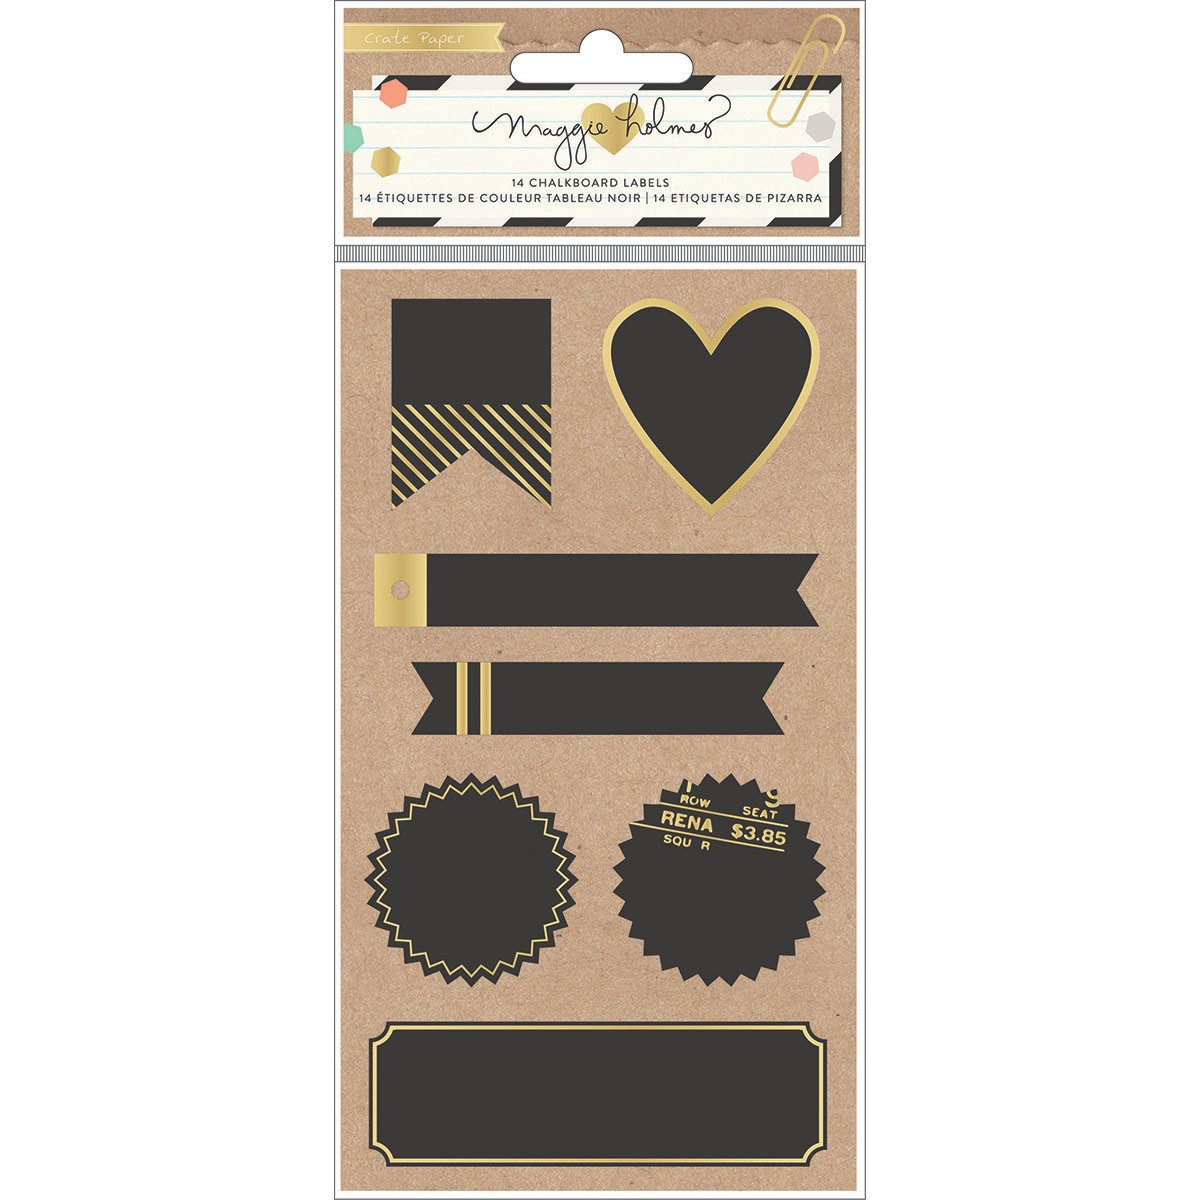 Crate Paper Maggie Holmes Confetti Chalkboard Labels with Gold American Crafts 683708